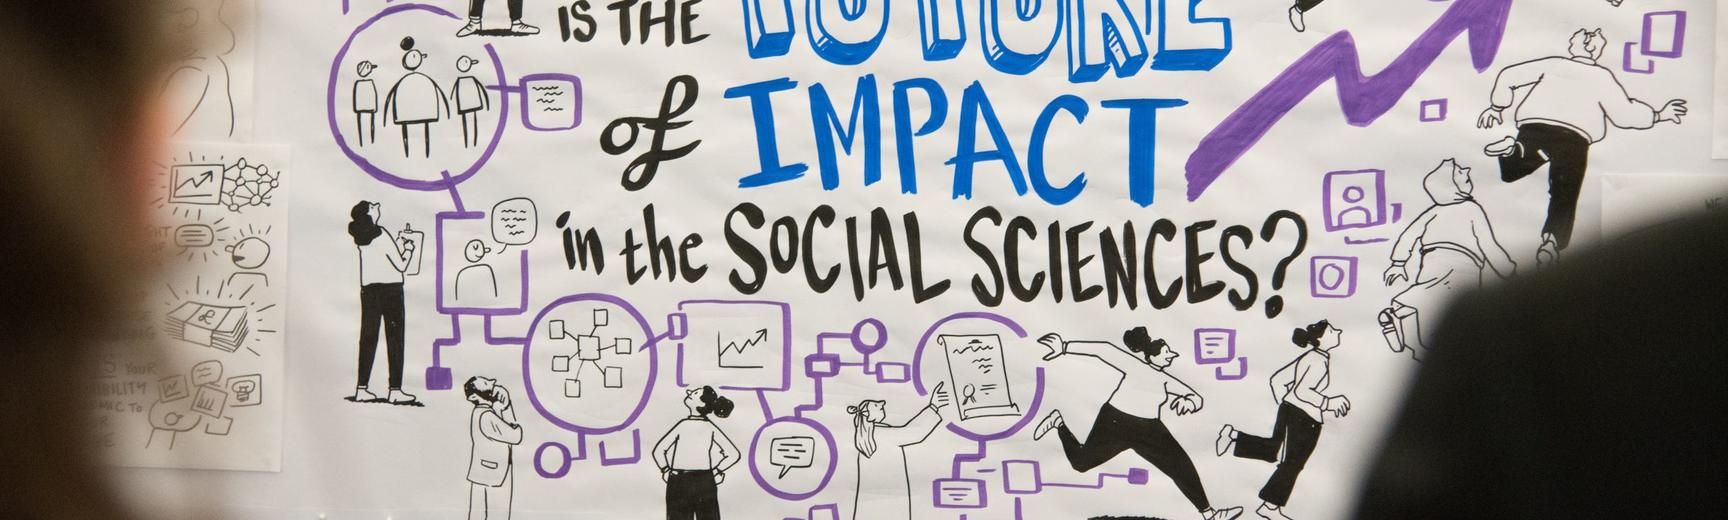 """A cartoon illustration of two-dimensional characters carrying out impact activities, with text saying """"What is the future of impact in the social sciences?"""""""